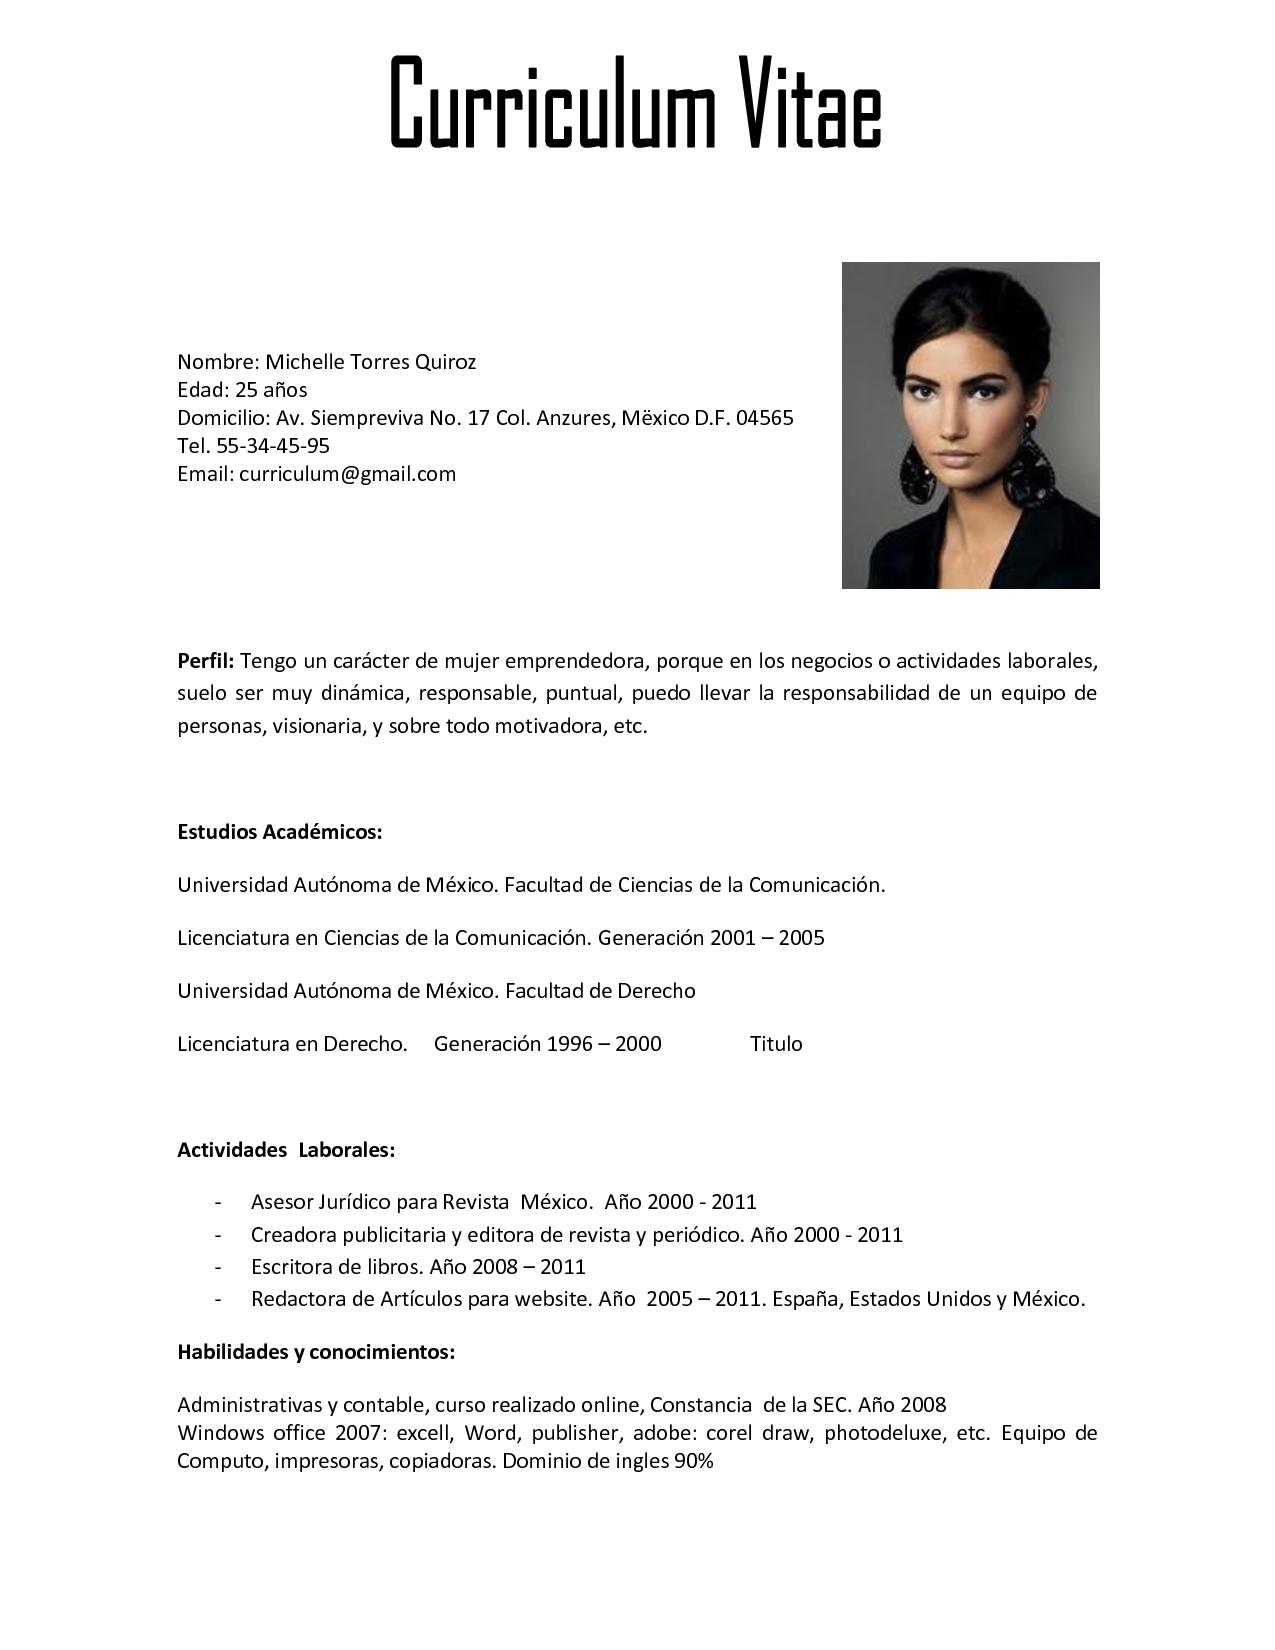 Muestras De Curriculum Vitae Hot Images Pictures Bre